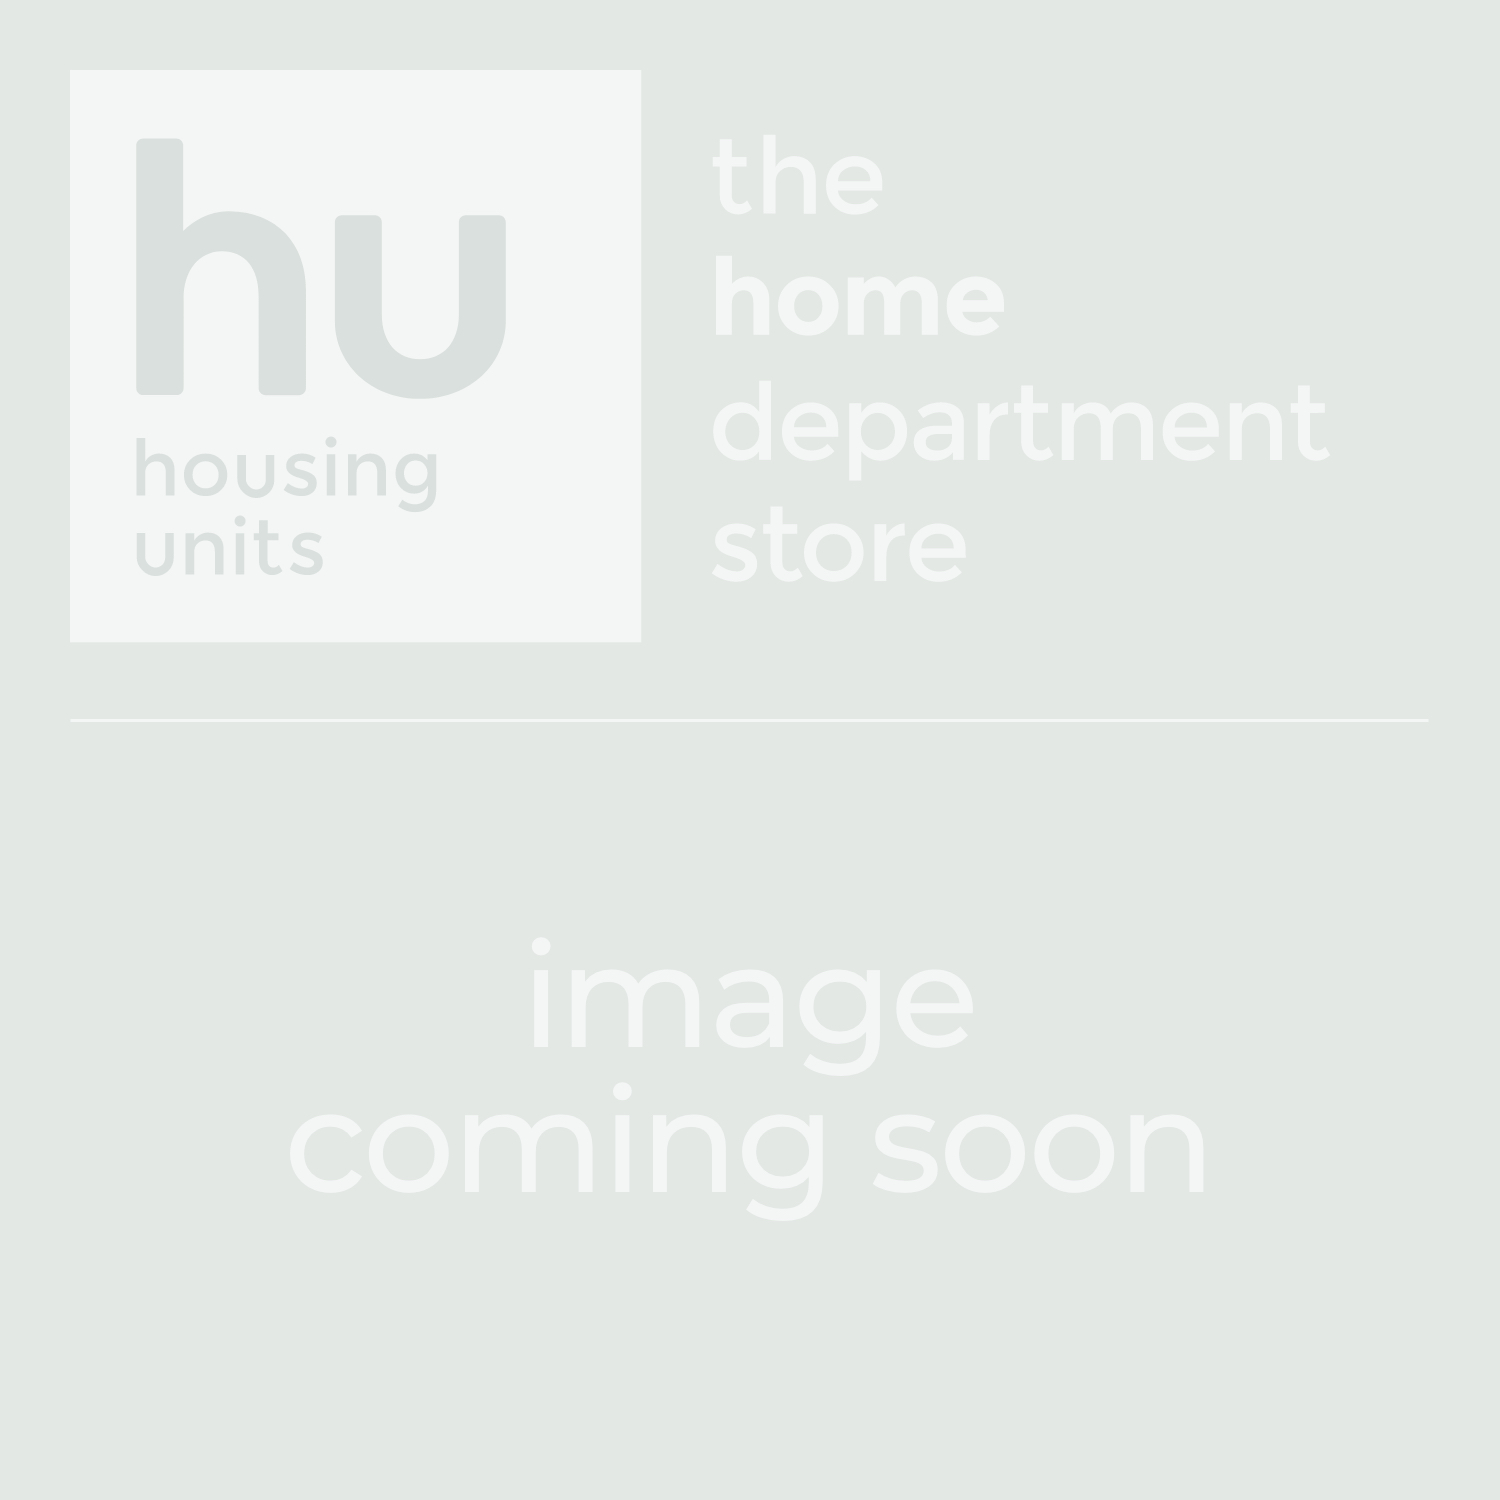 Urban Oak Fire Surround with Downlighters | Housing Units